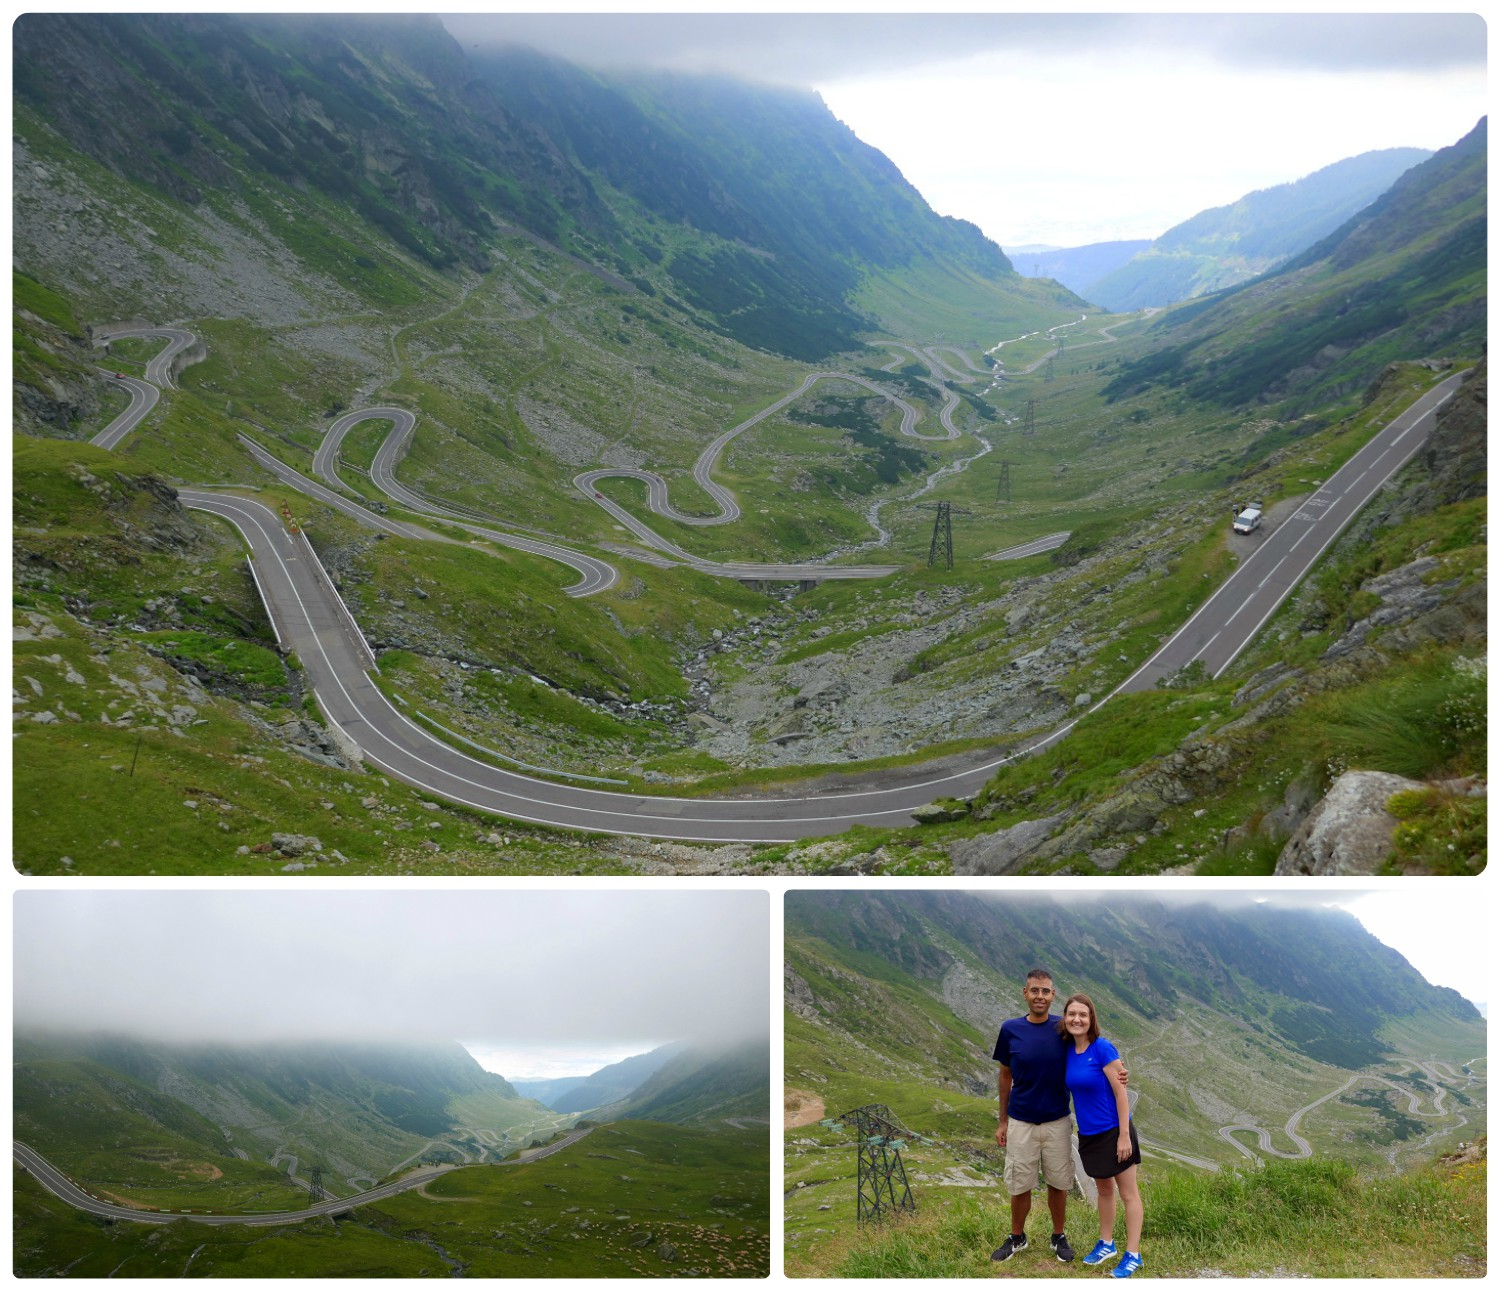 This is the view of the Transfagarasan Highway we were waiting for. The switchbacks through the valley are like almost nothing else!